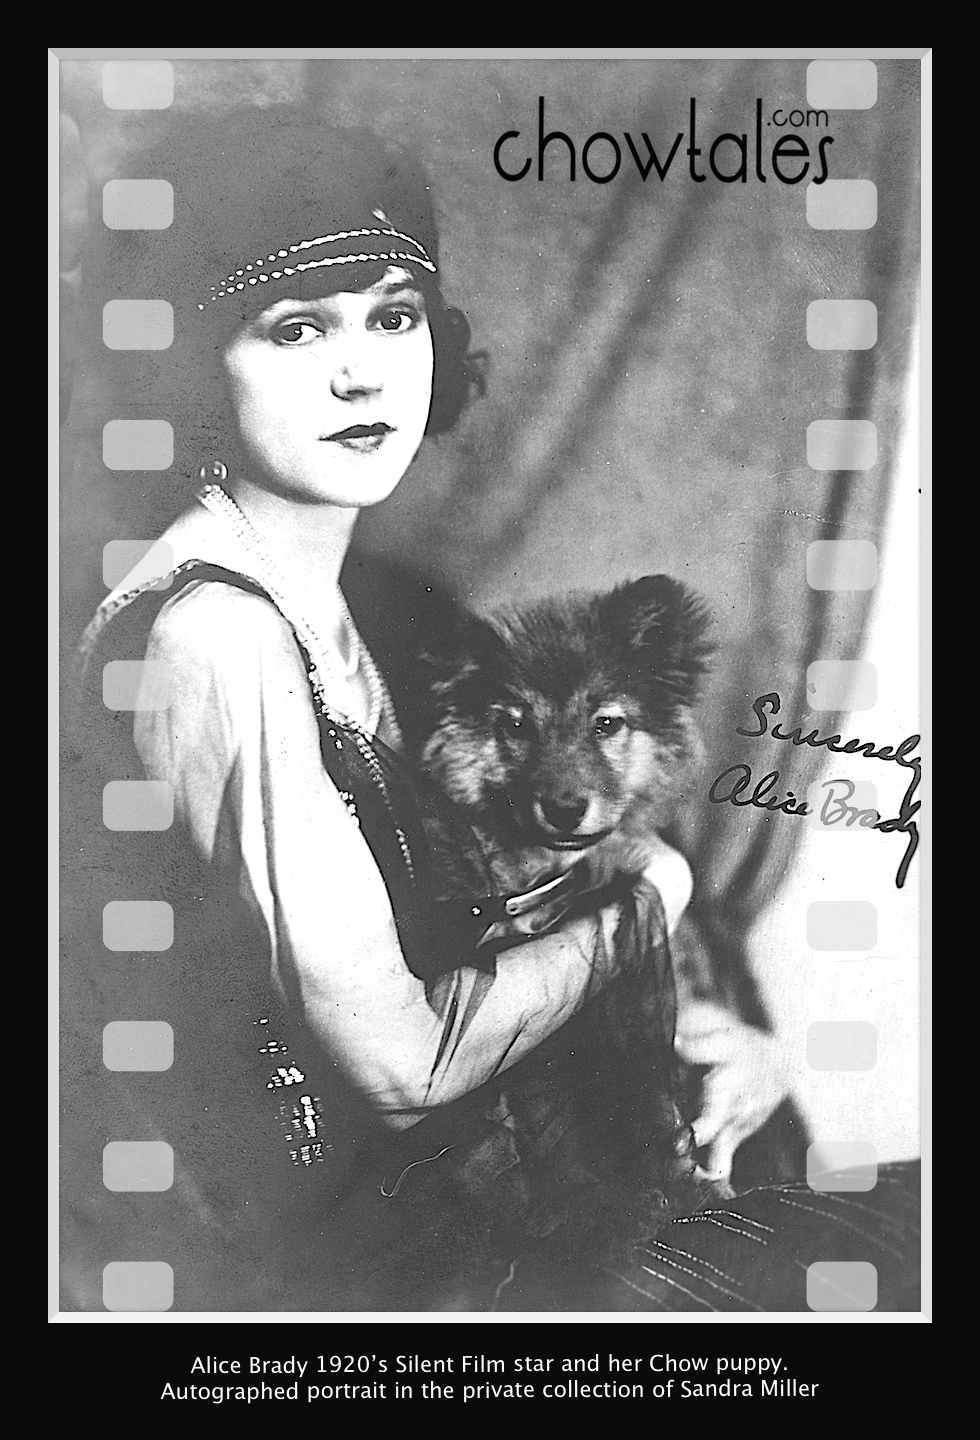 Alice Brady Actress signed 1 - Version 2 (1 of 1)